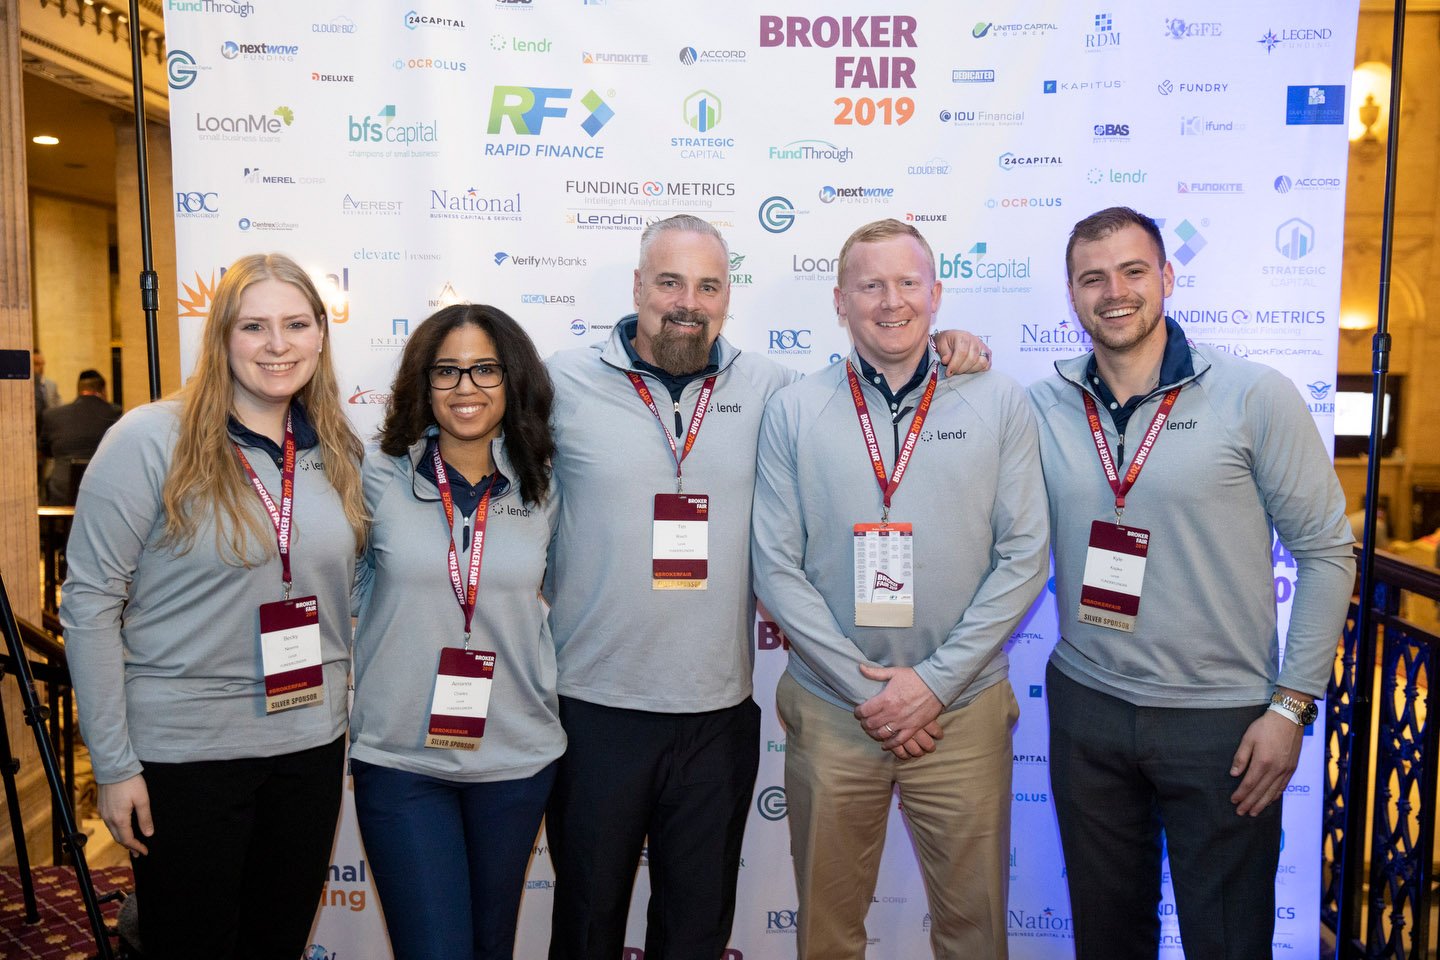 Broker Fair 2019 - Presented by deBanked - 302